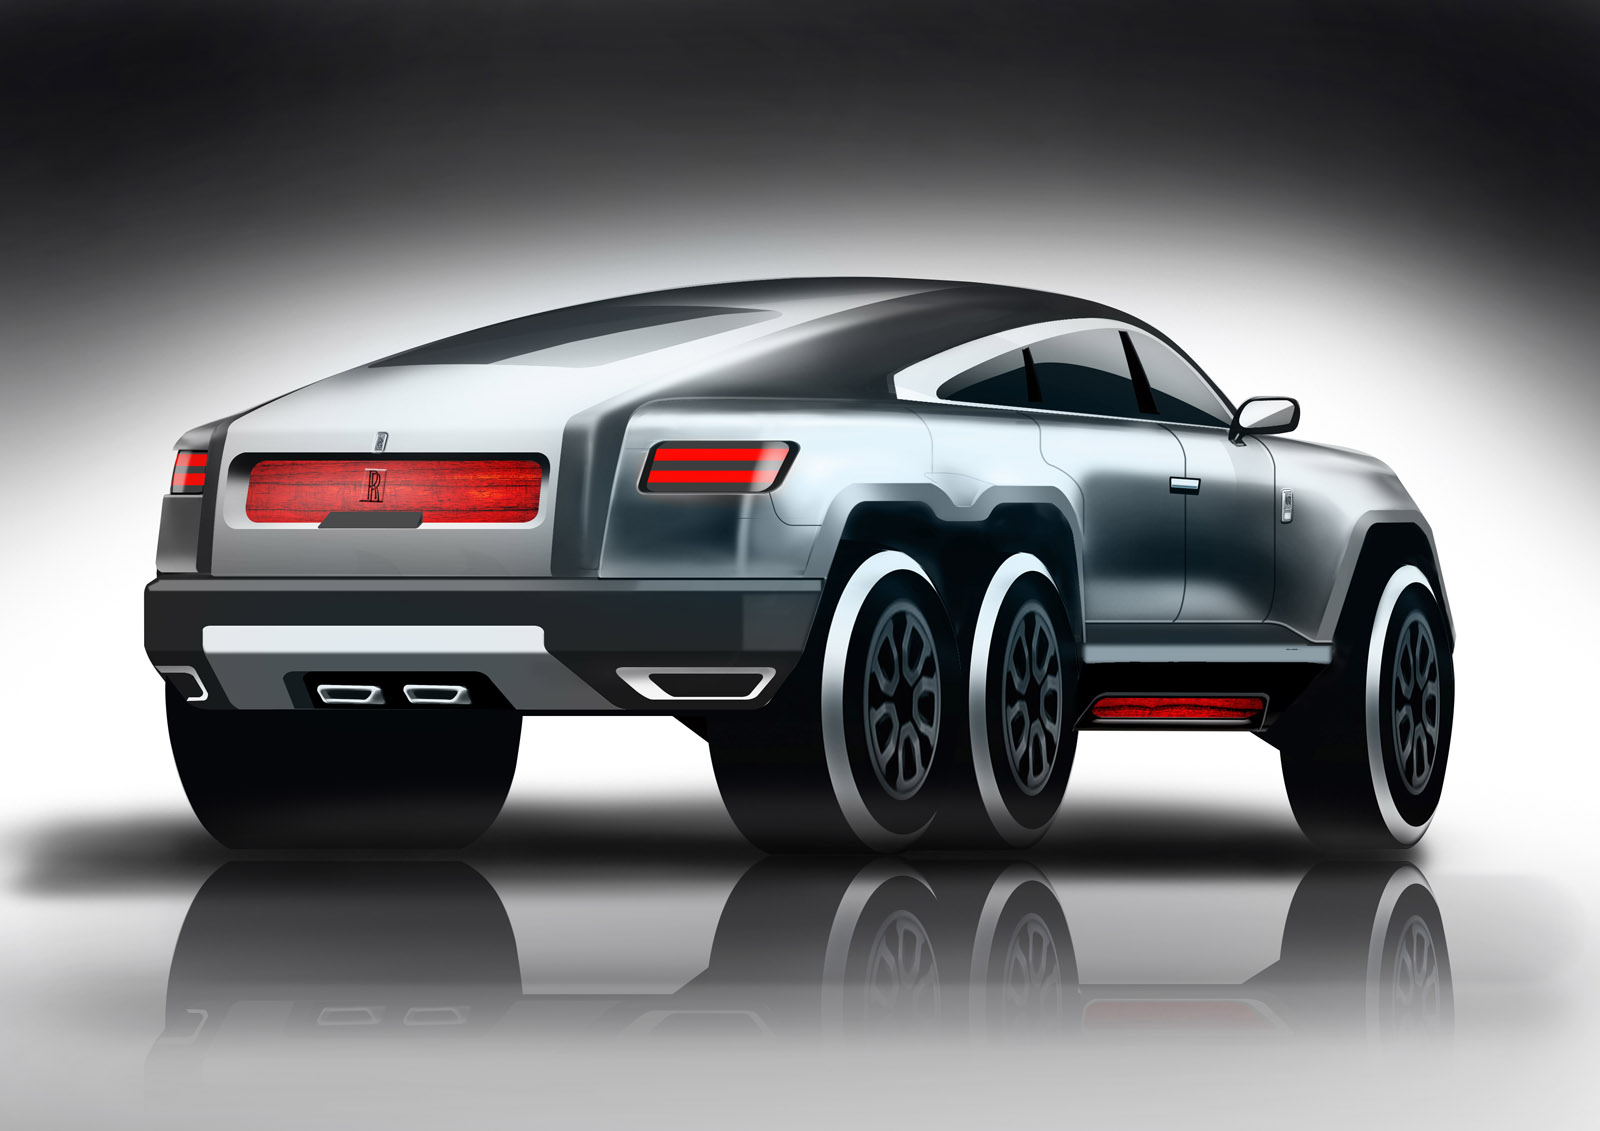 This Rolls Royce 6x6 Suv Design Is Crazy But Not That